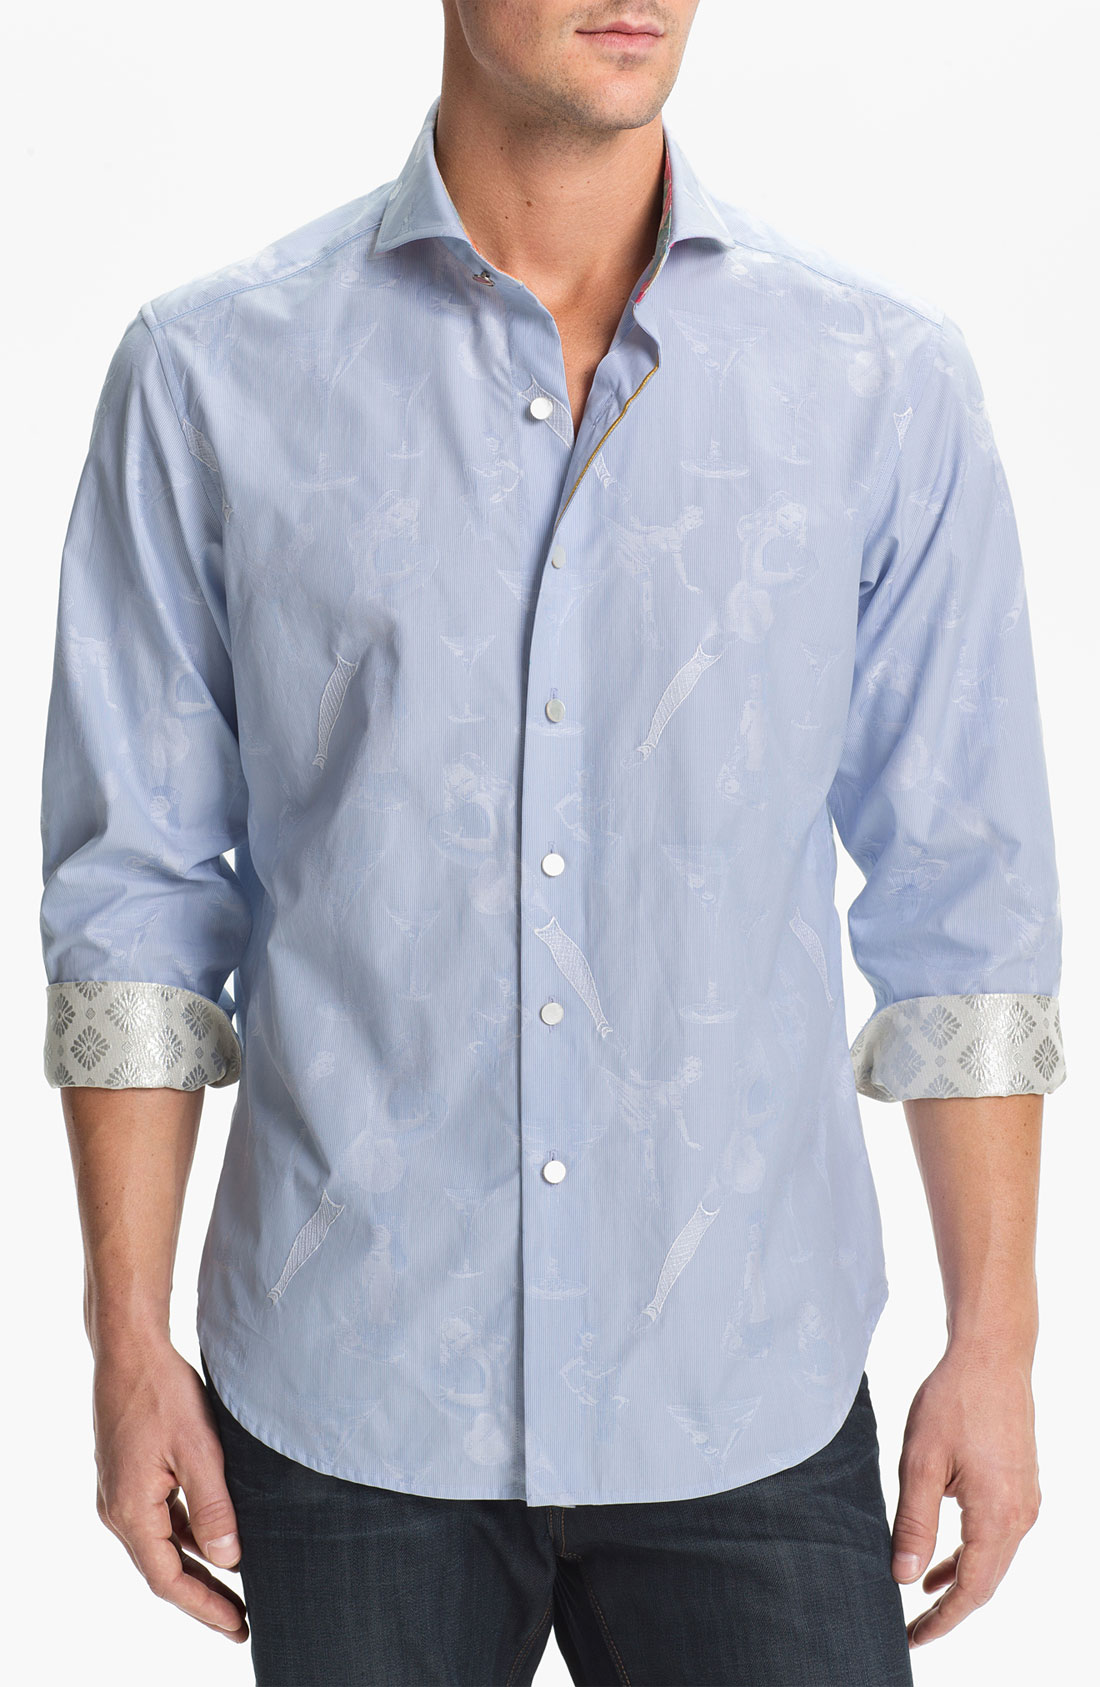 Robert graham sereno sport shirt limited edition in blue for Where are robert graham shirts made